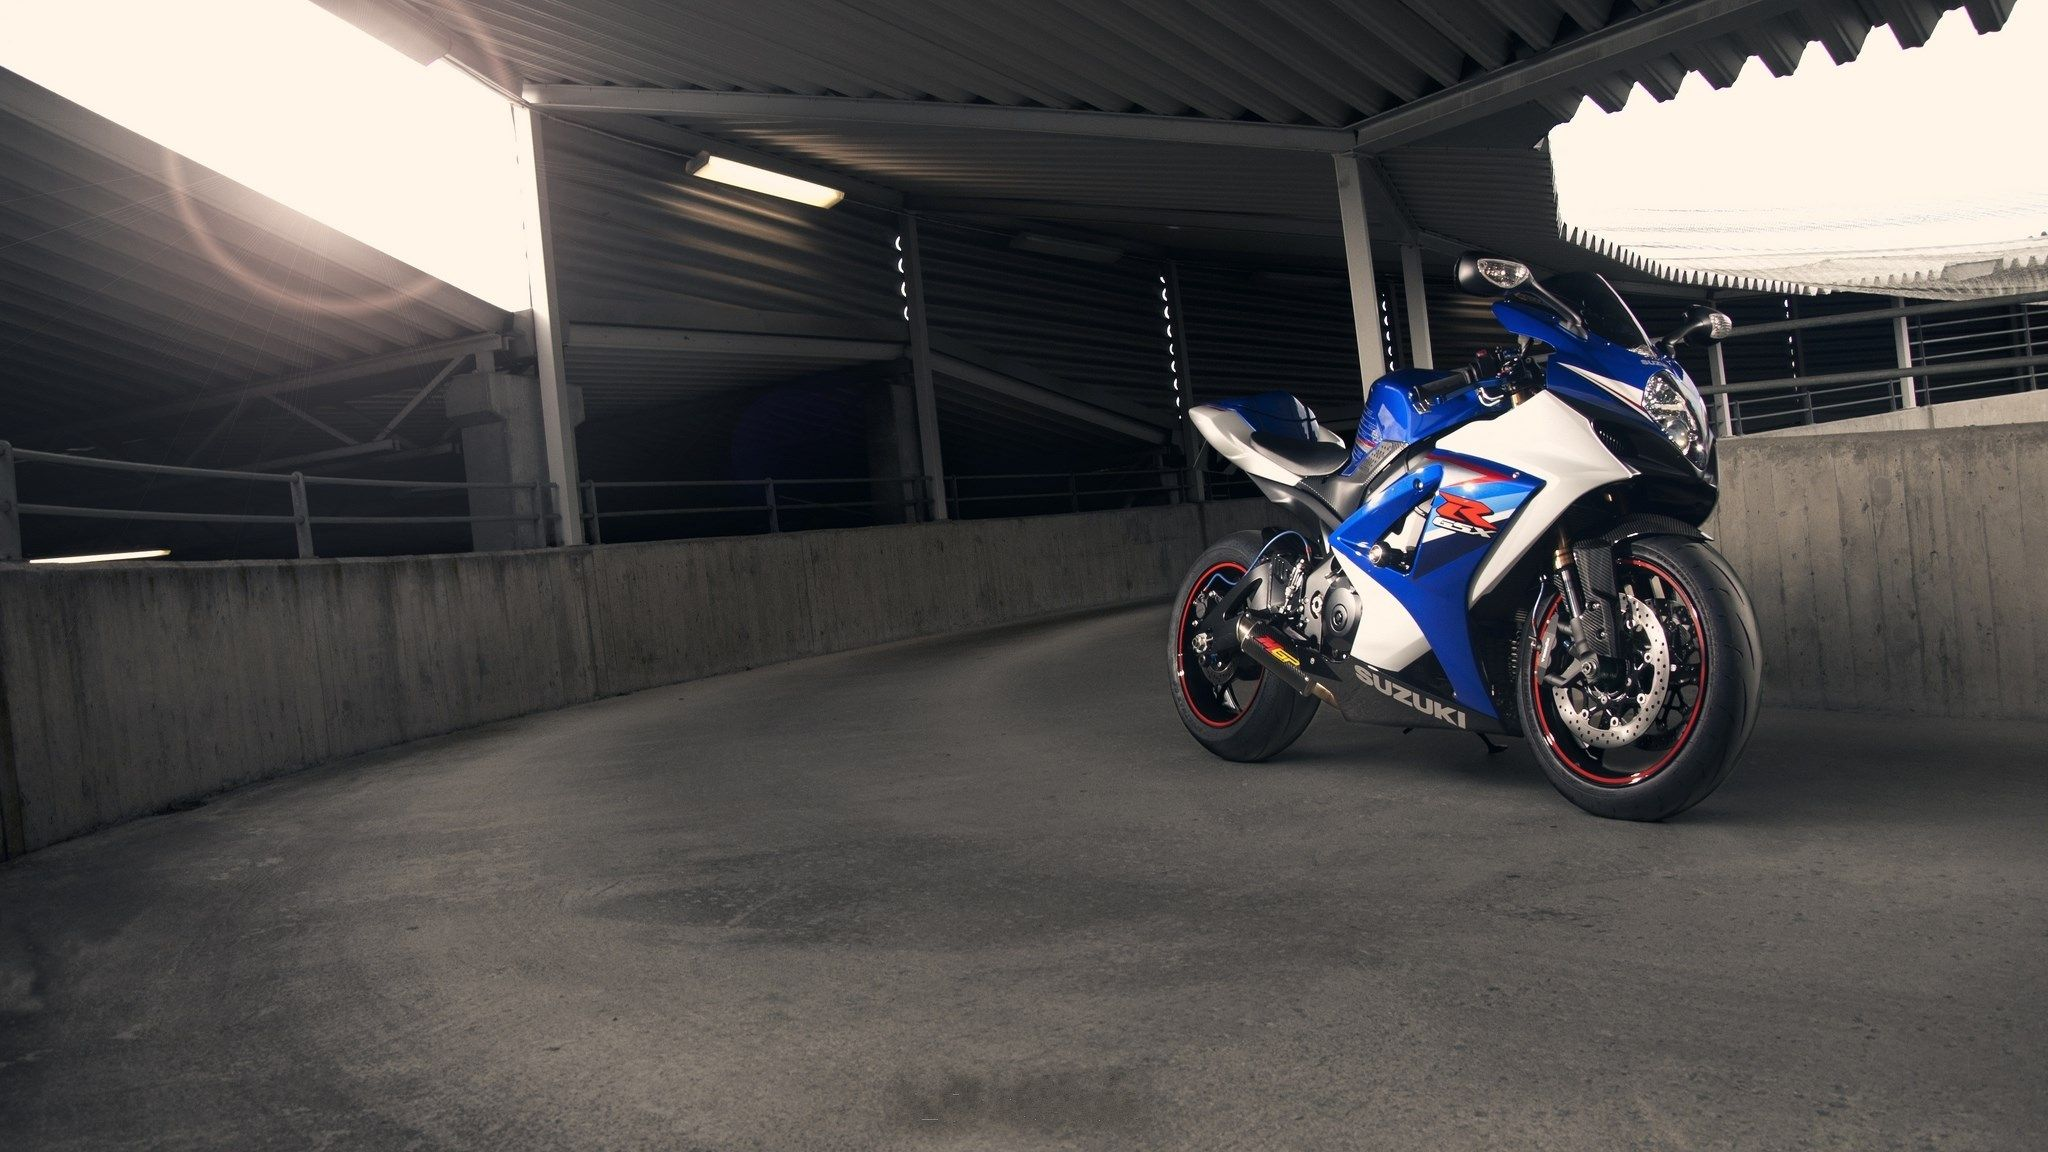 Hd suzuki gsxr 1000 wallpaper